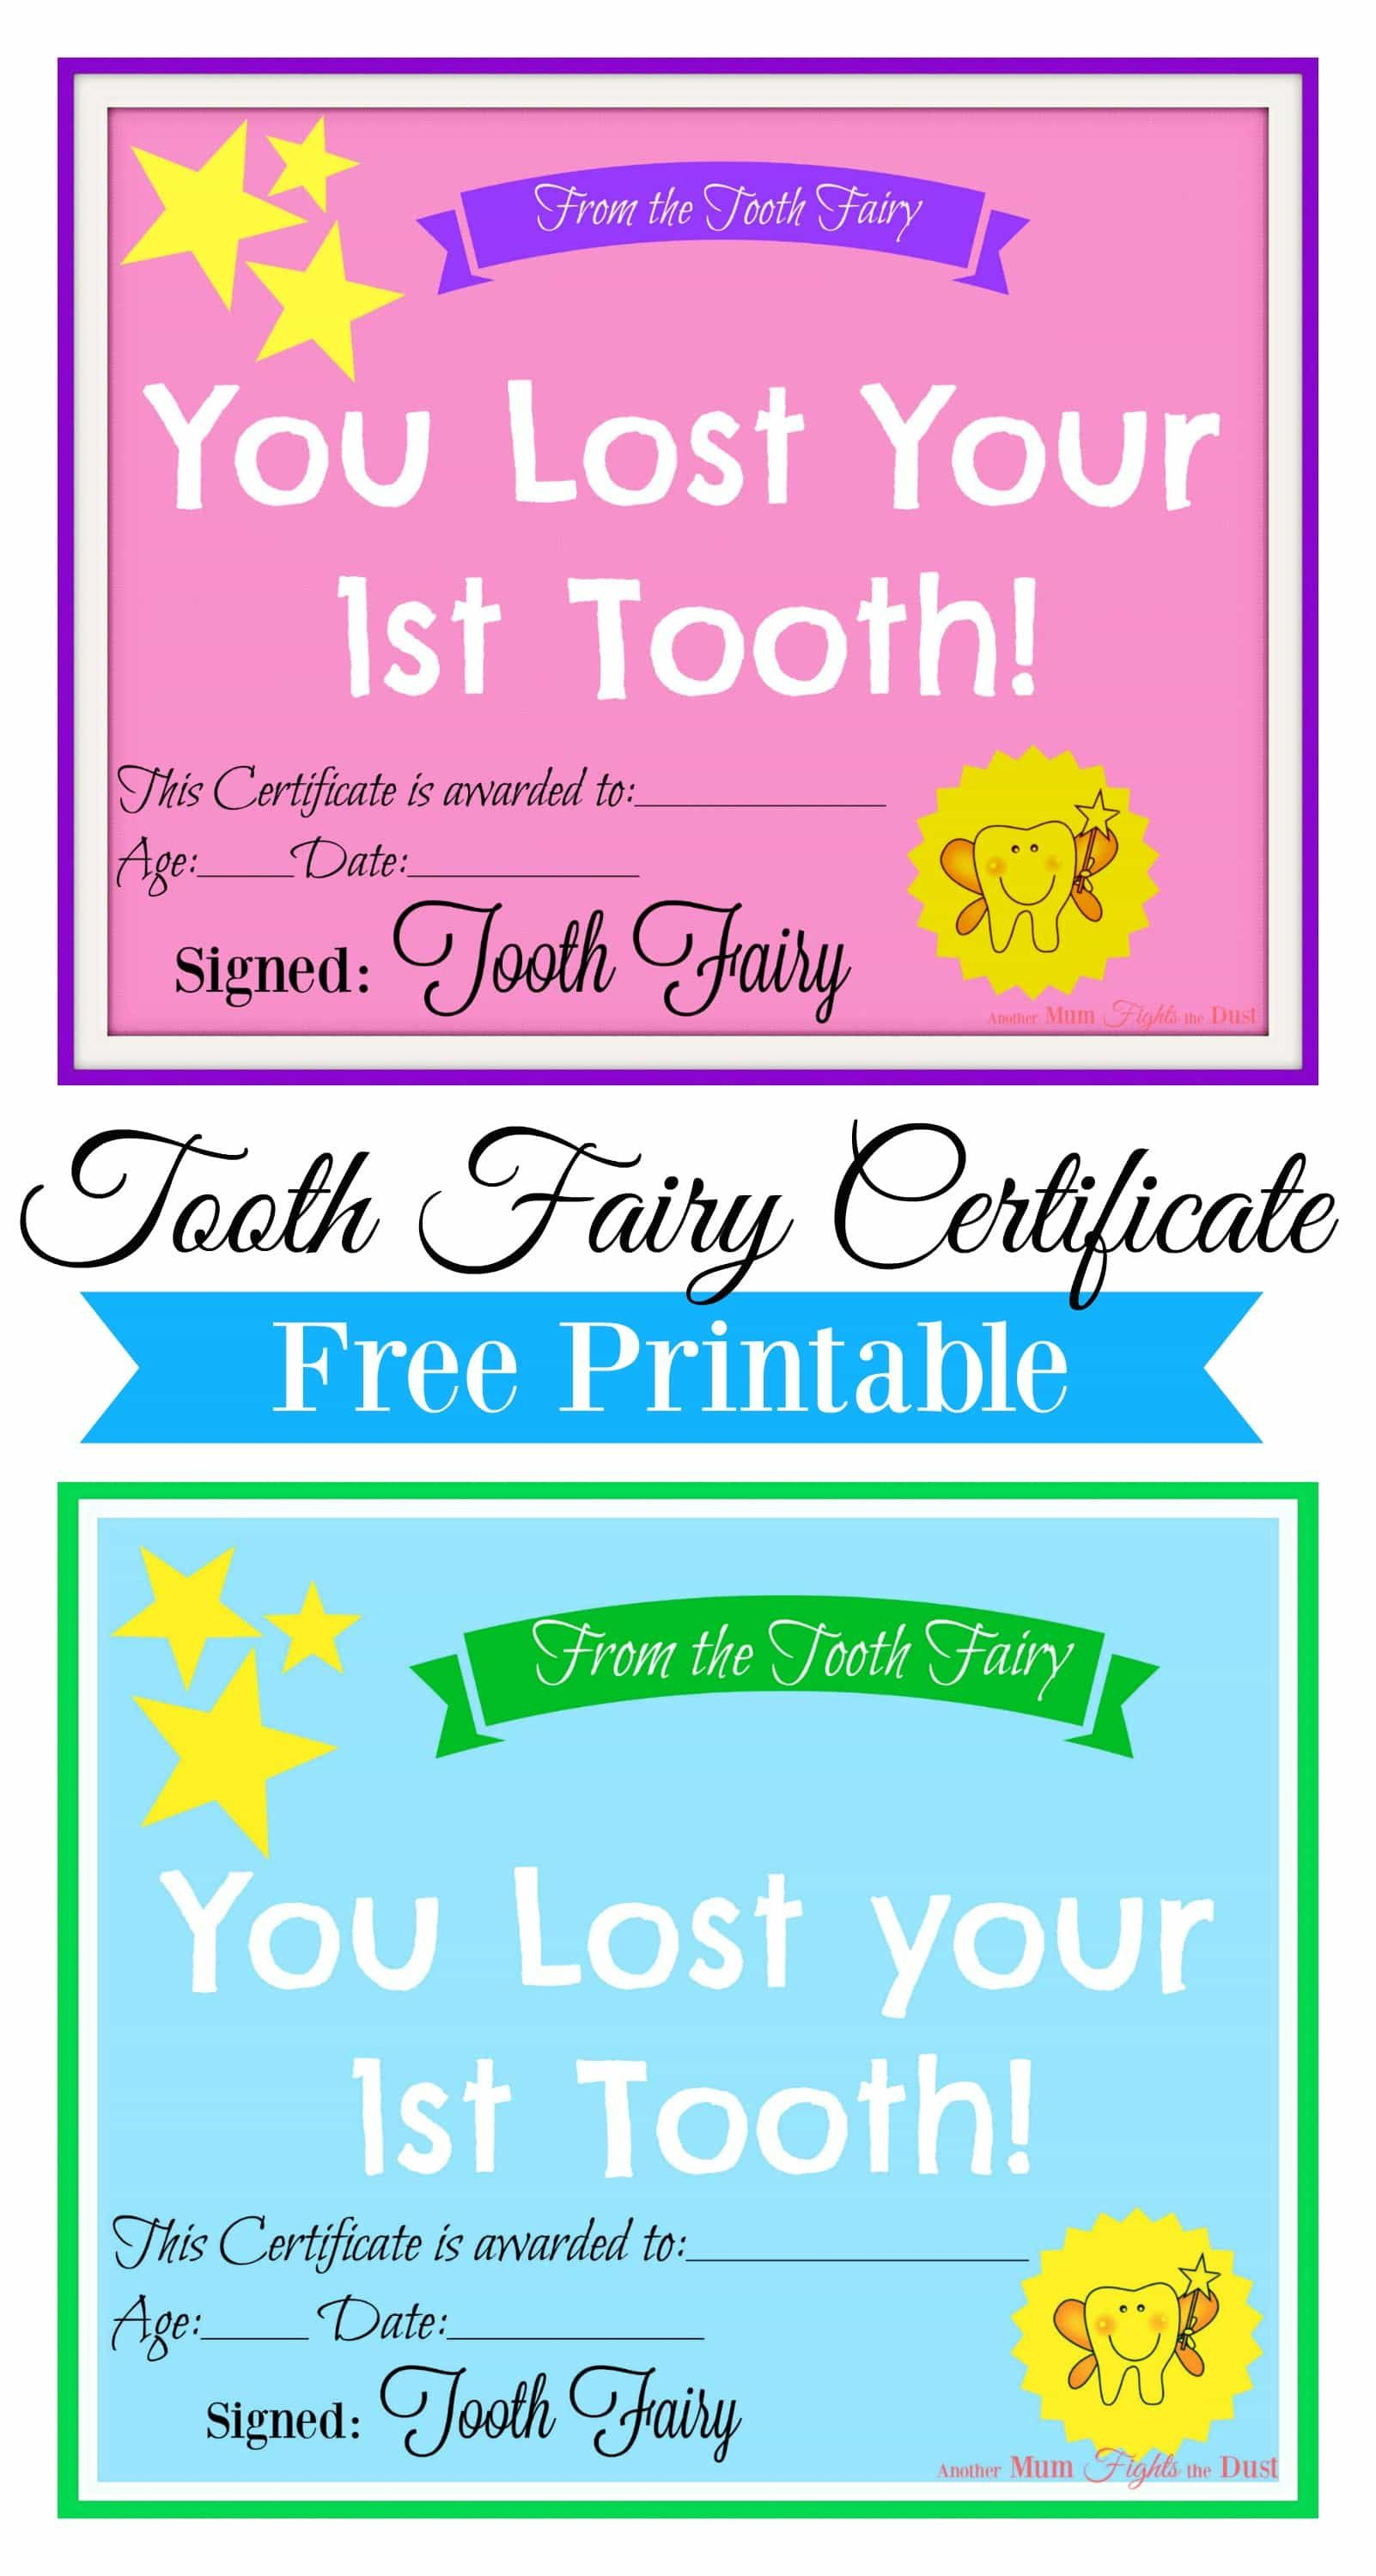 Free Printable Tooth Fairy Certificate   Tooth Fairy Ideas   Tooth - Free Printable First Lost Tooth Certificate